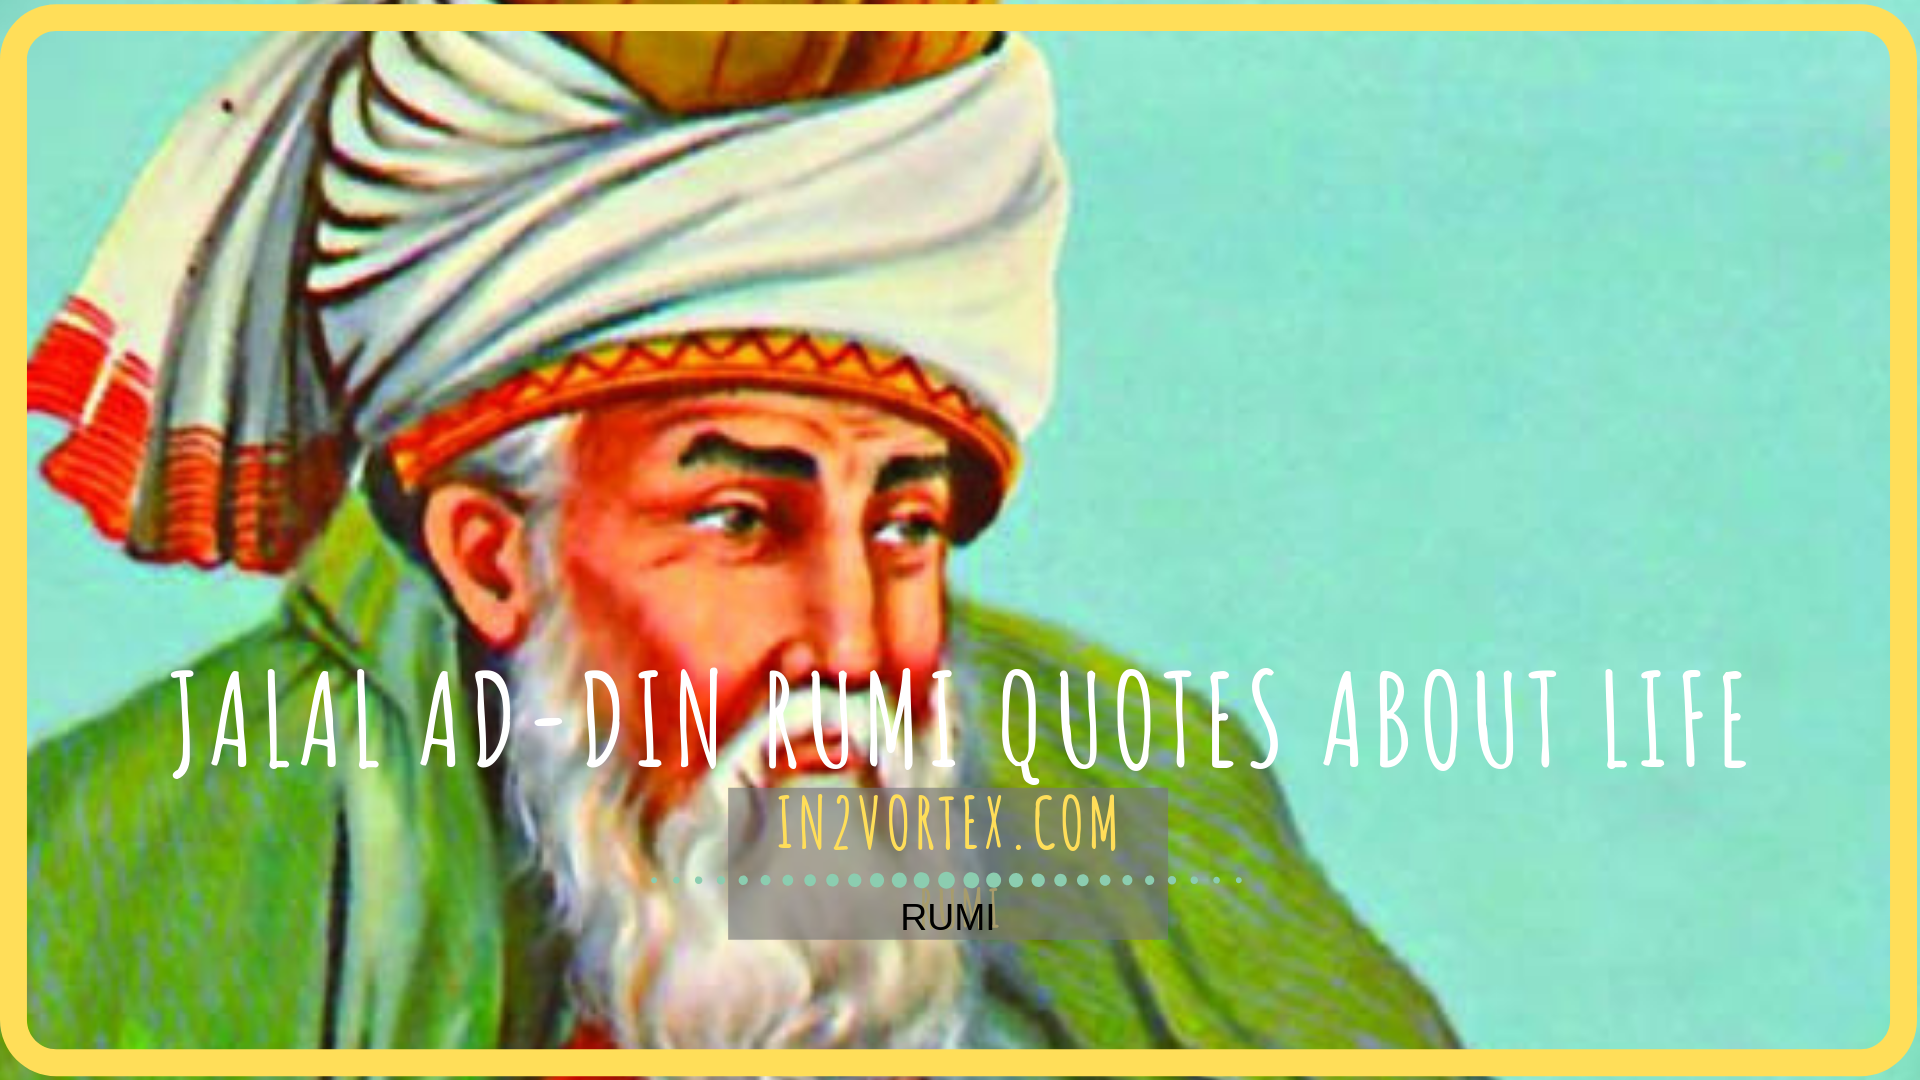 Jalal ad-Din Rumi quotes About Life 2019, in2vortex